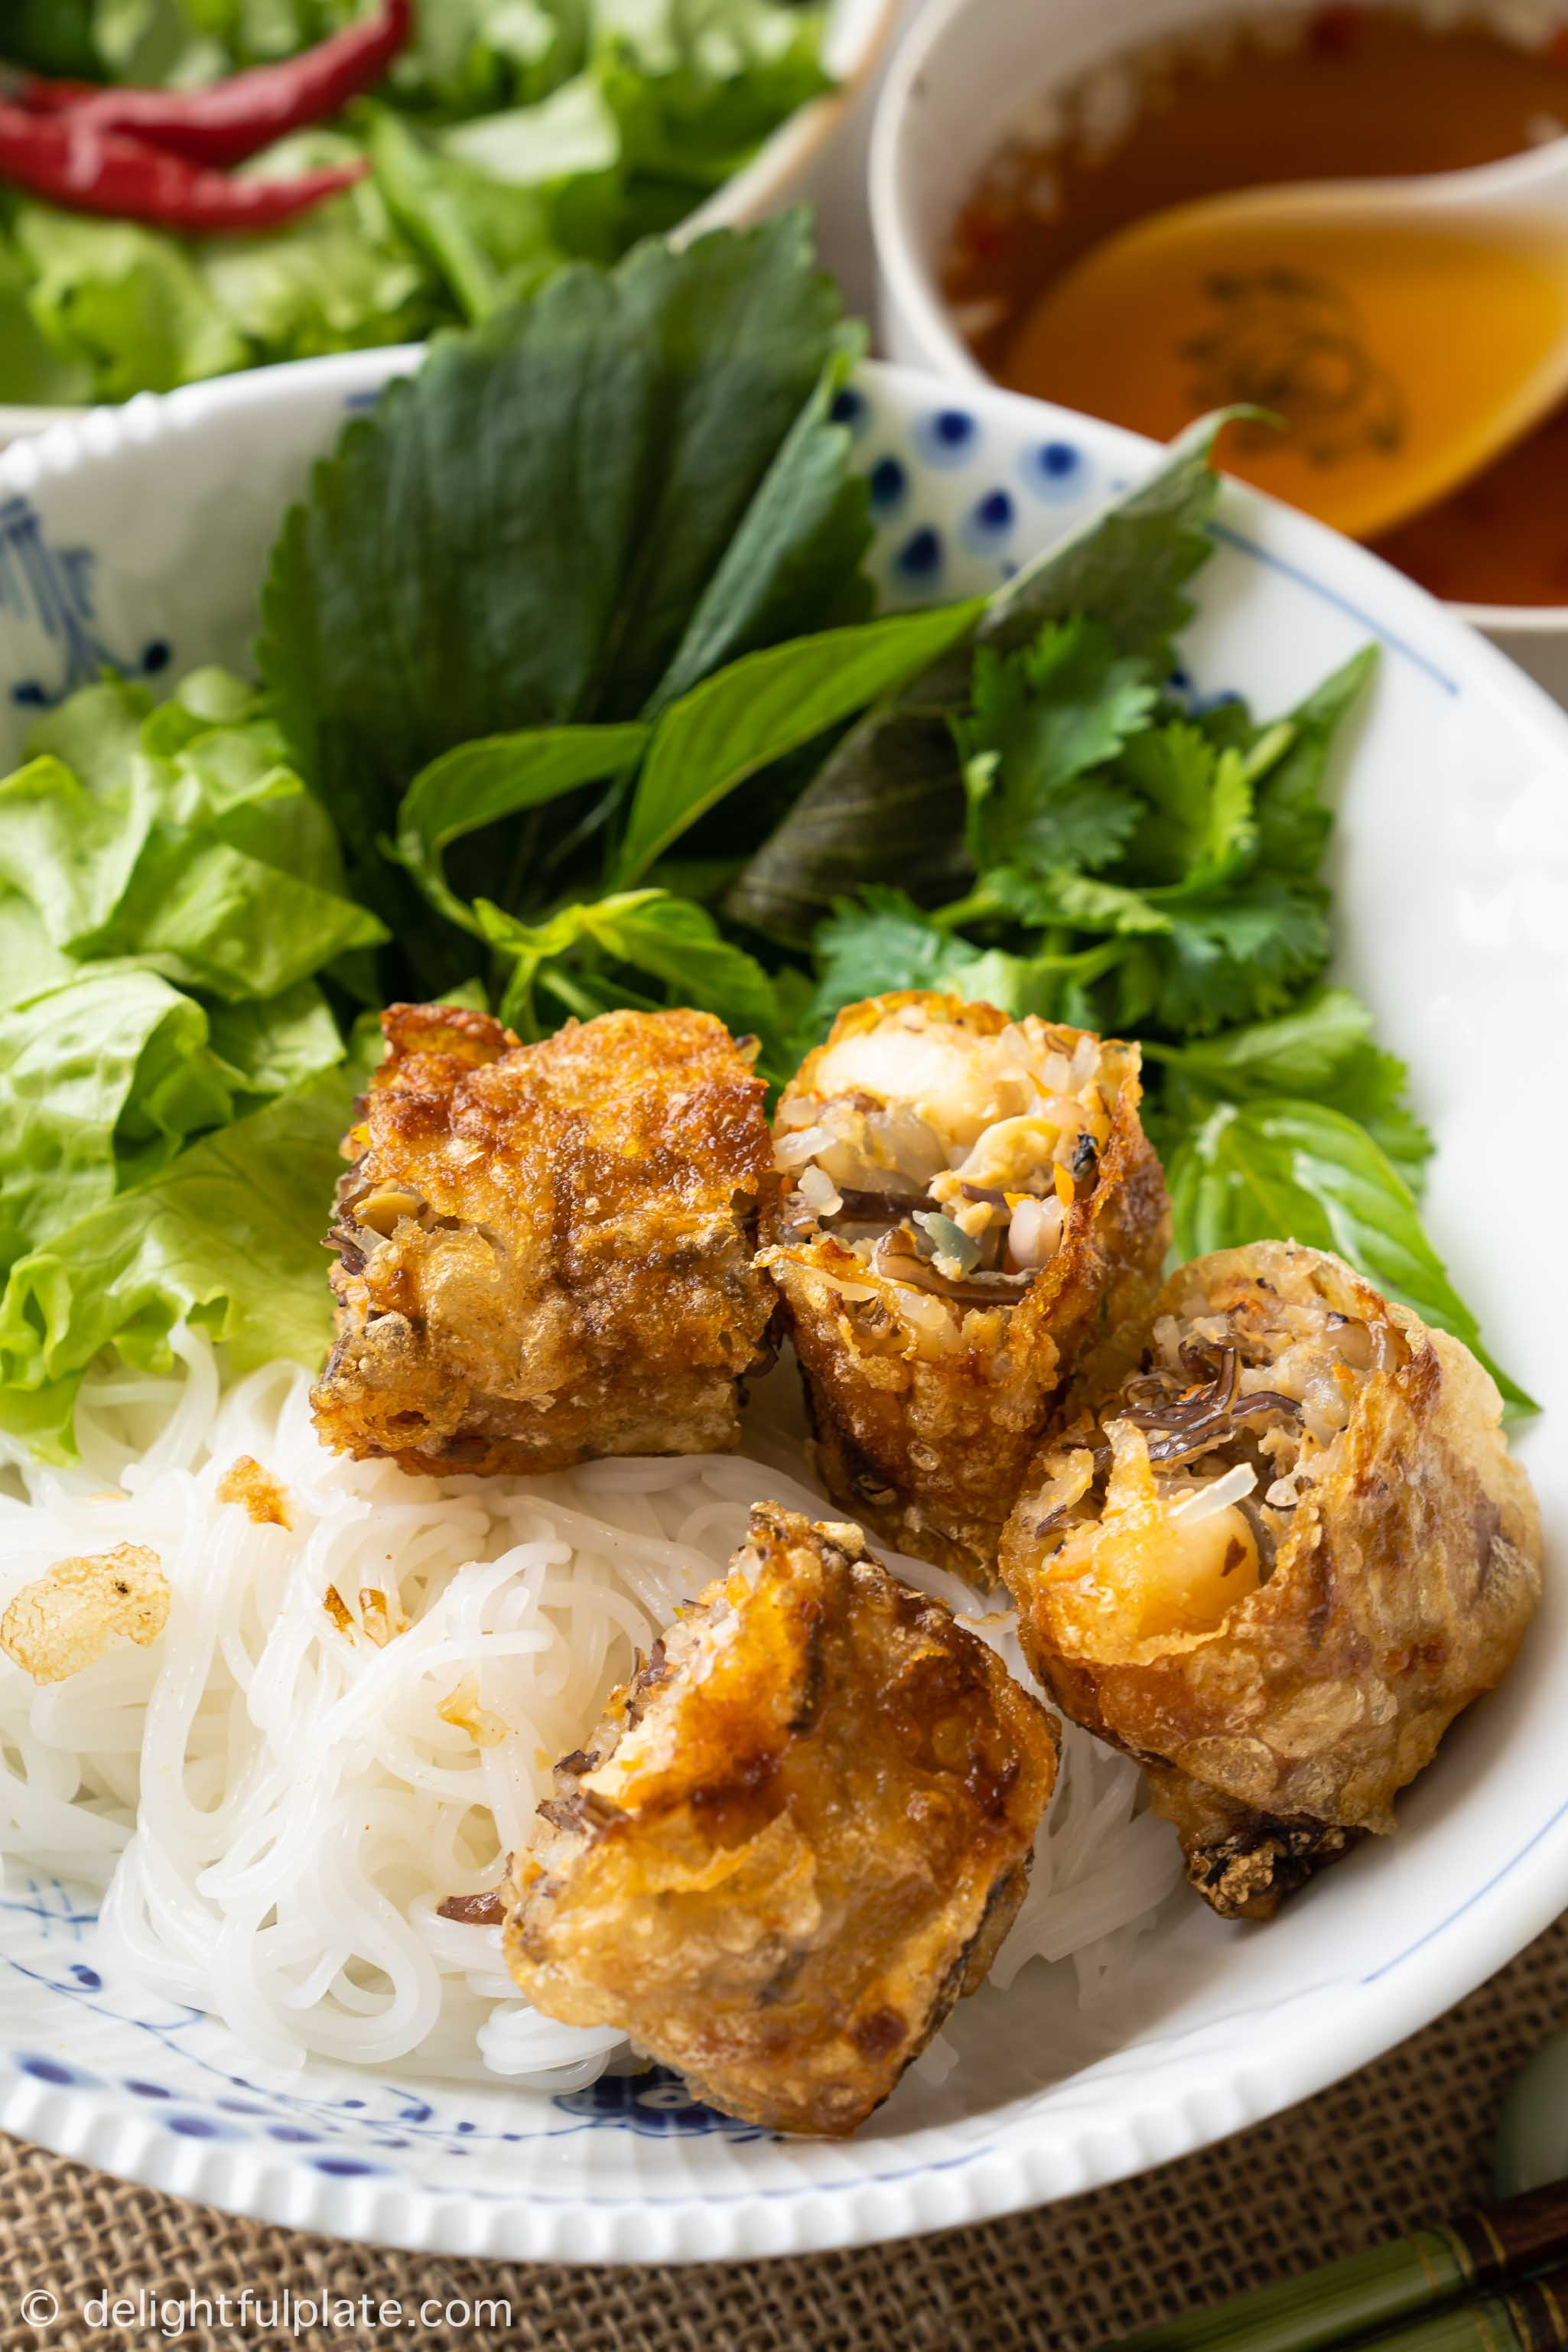 a bowl of rice vermicelli noodles, fried spring rolls, lettuce and fresh herbs